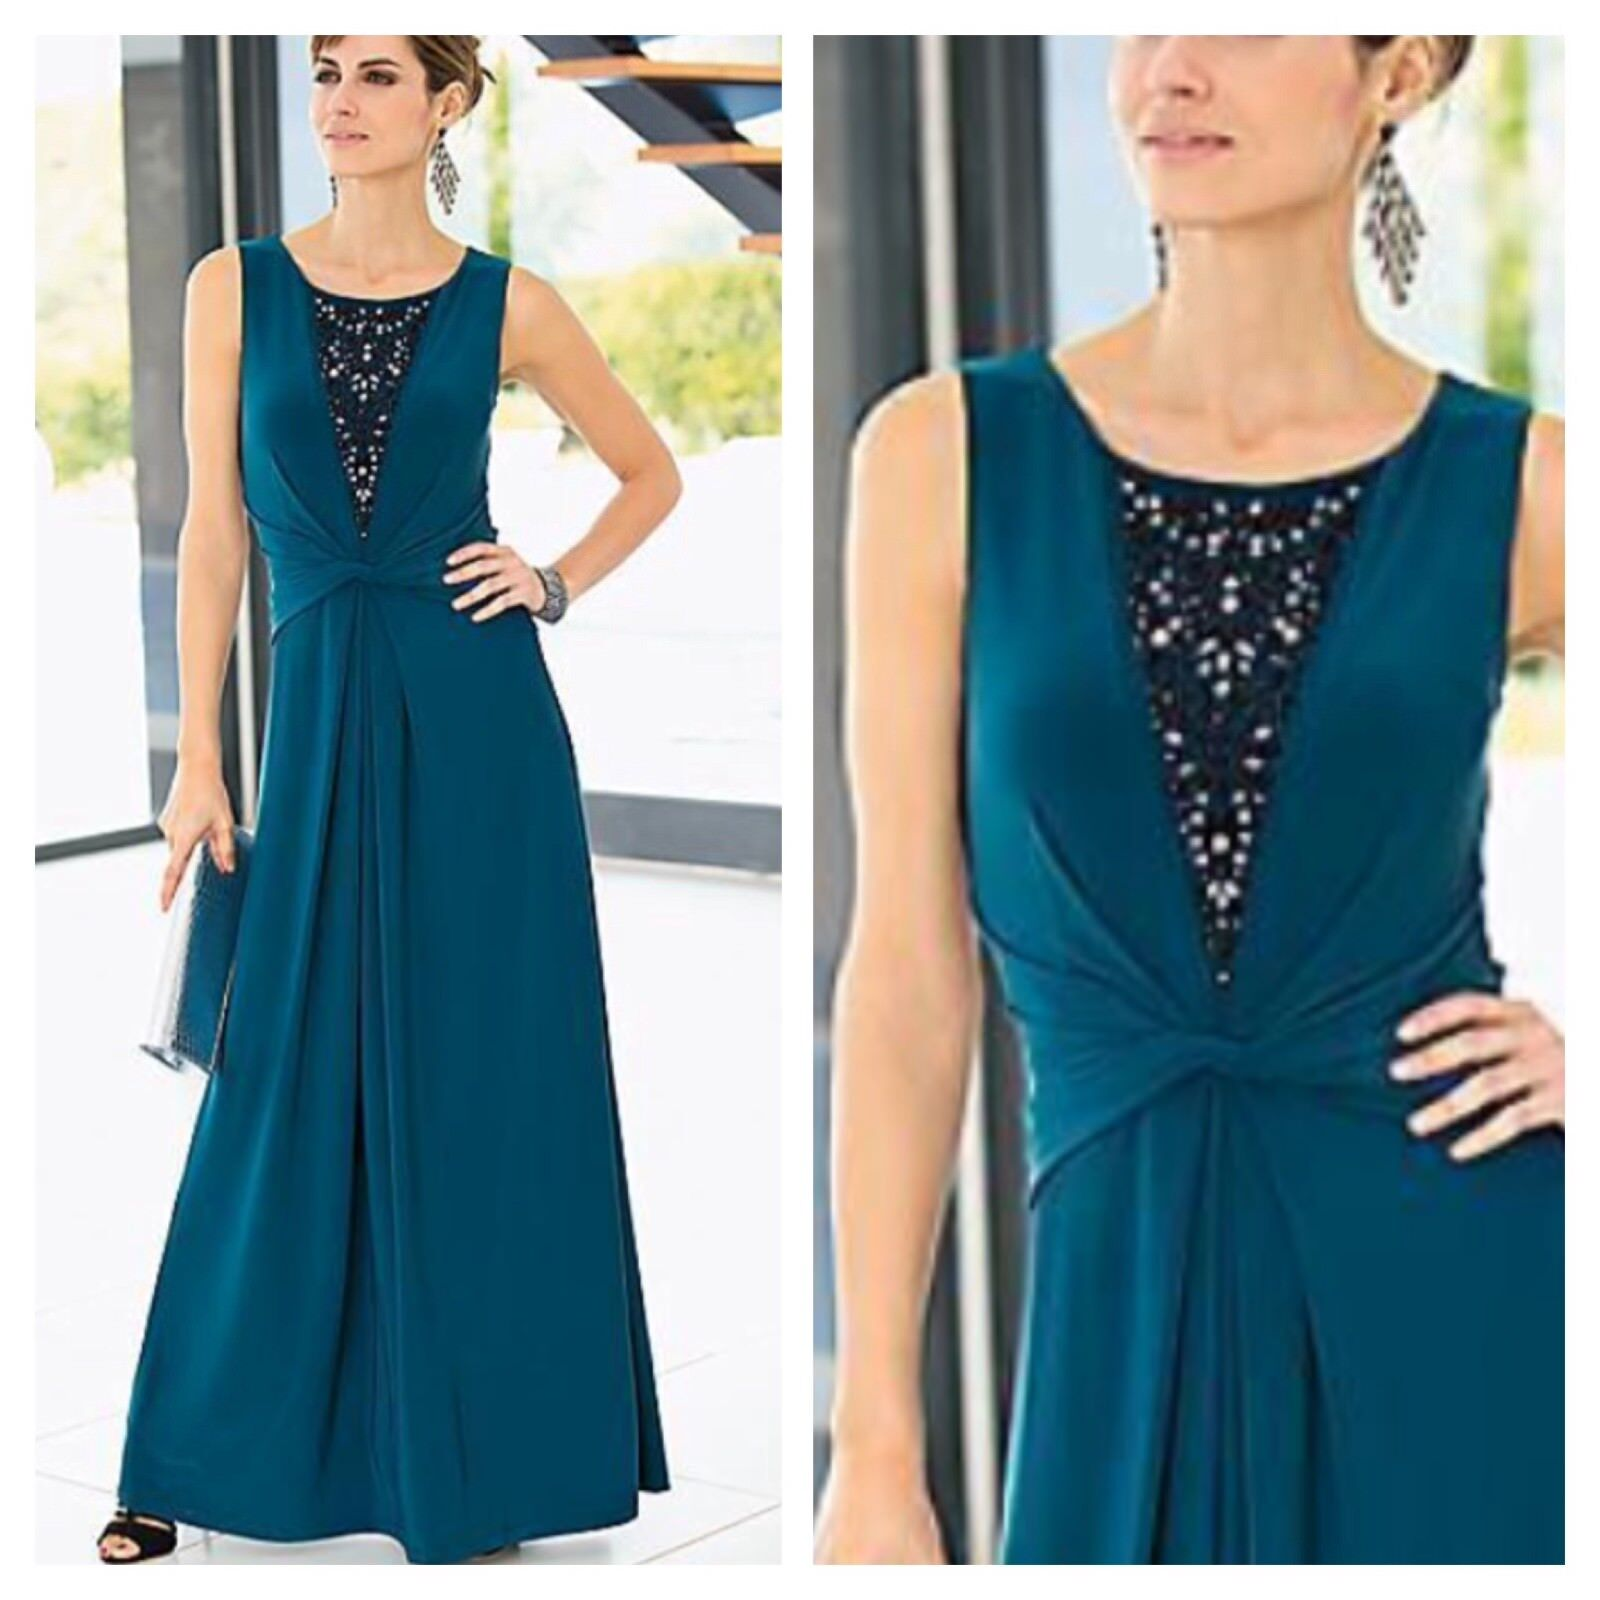 Together Size 8 Teal Bead Embellished Maxi Evening Occasion DRESS Xmas Party